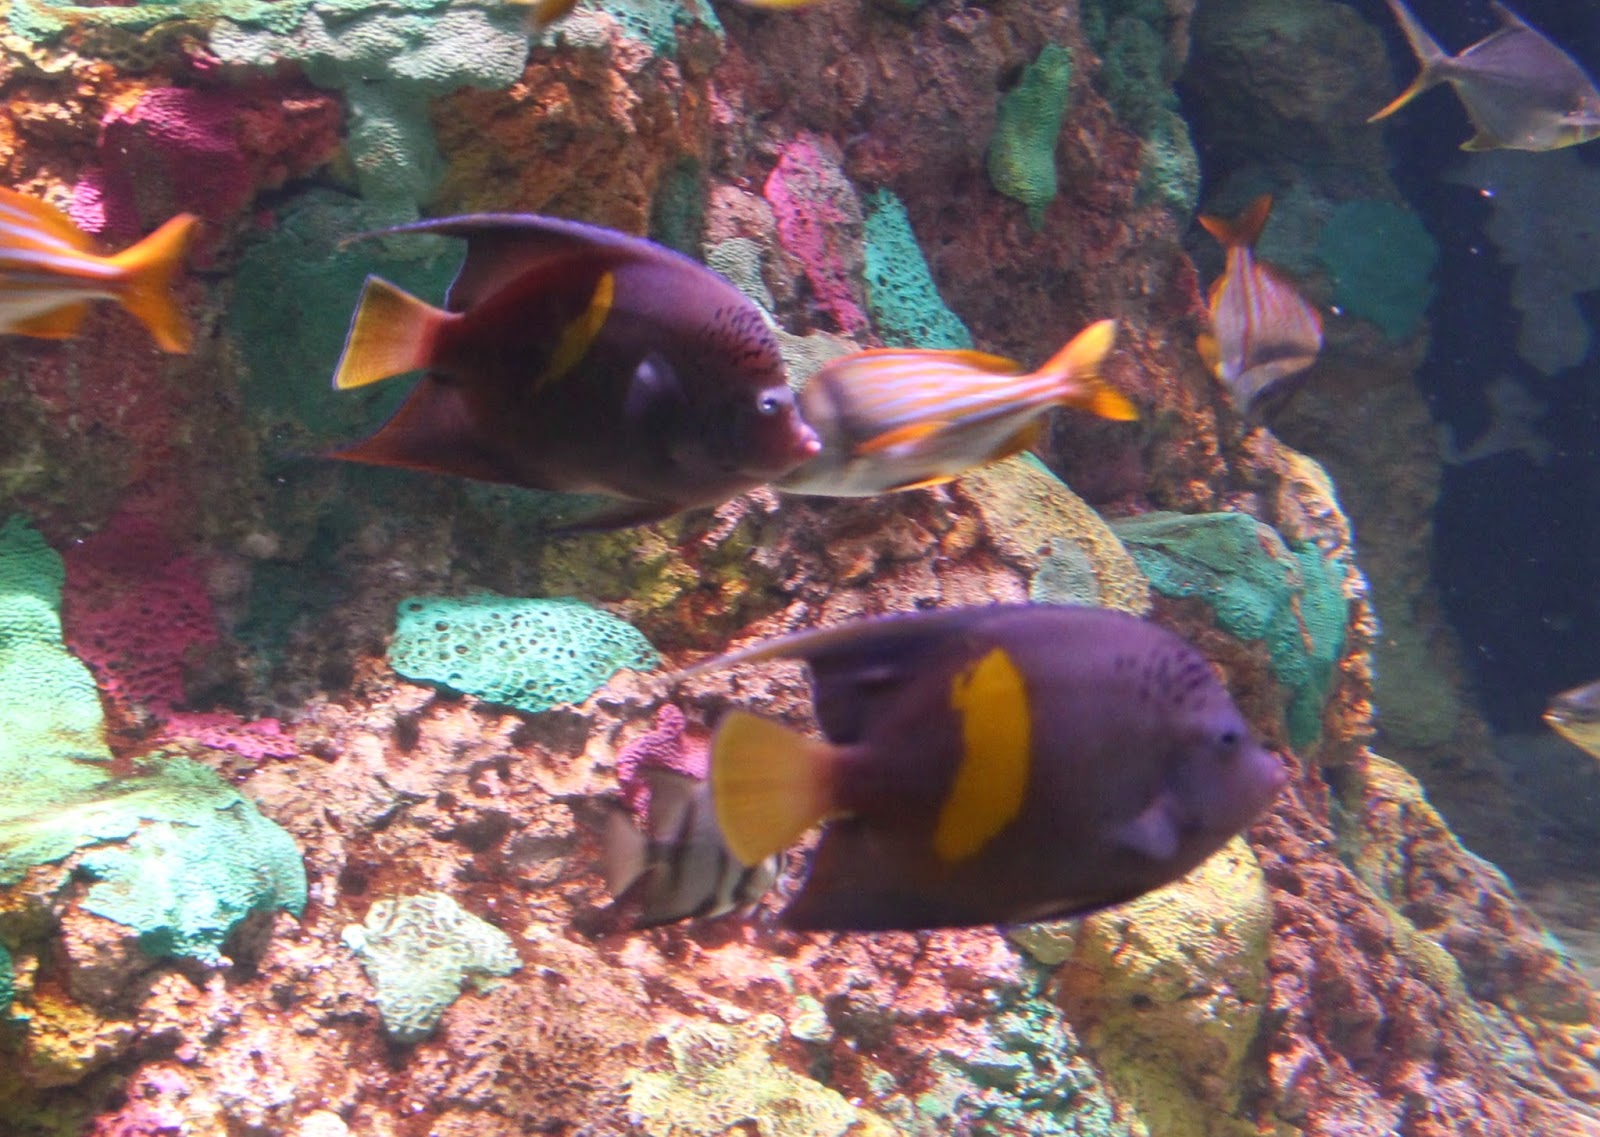 Figure 2.  Two angelfish (2-3 years old) on display at SeaWorld Orlando. Photo credit: Joe Moynihan.